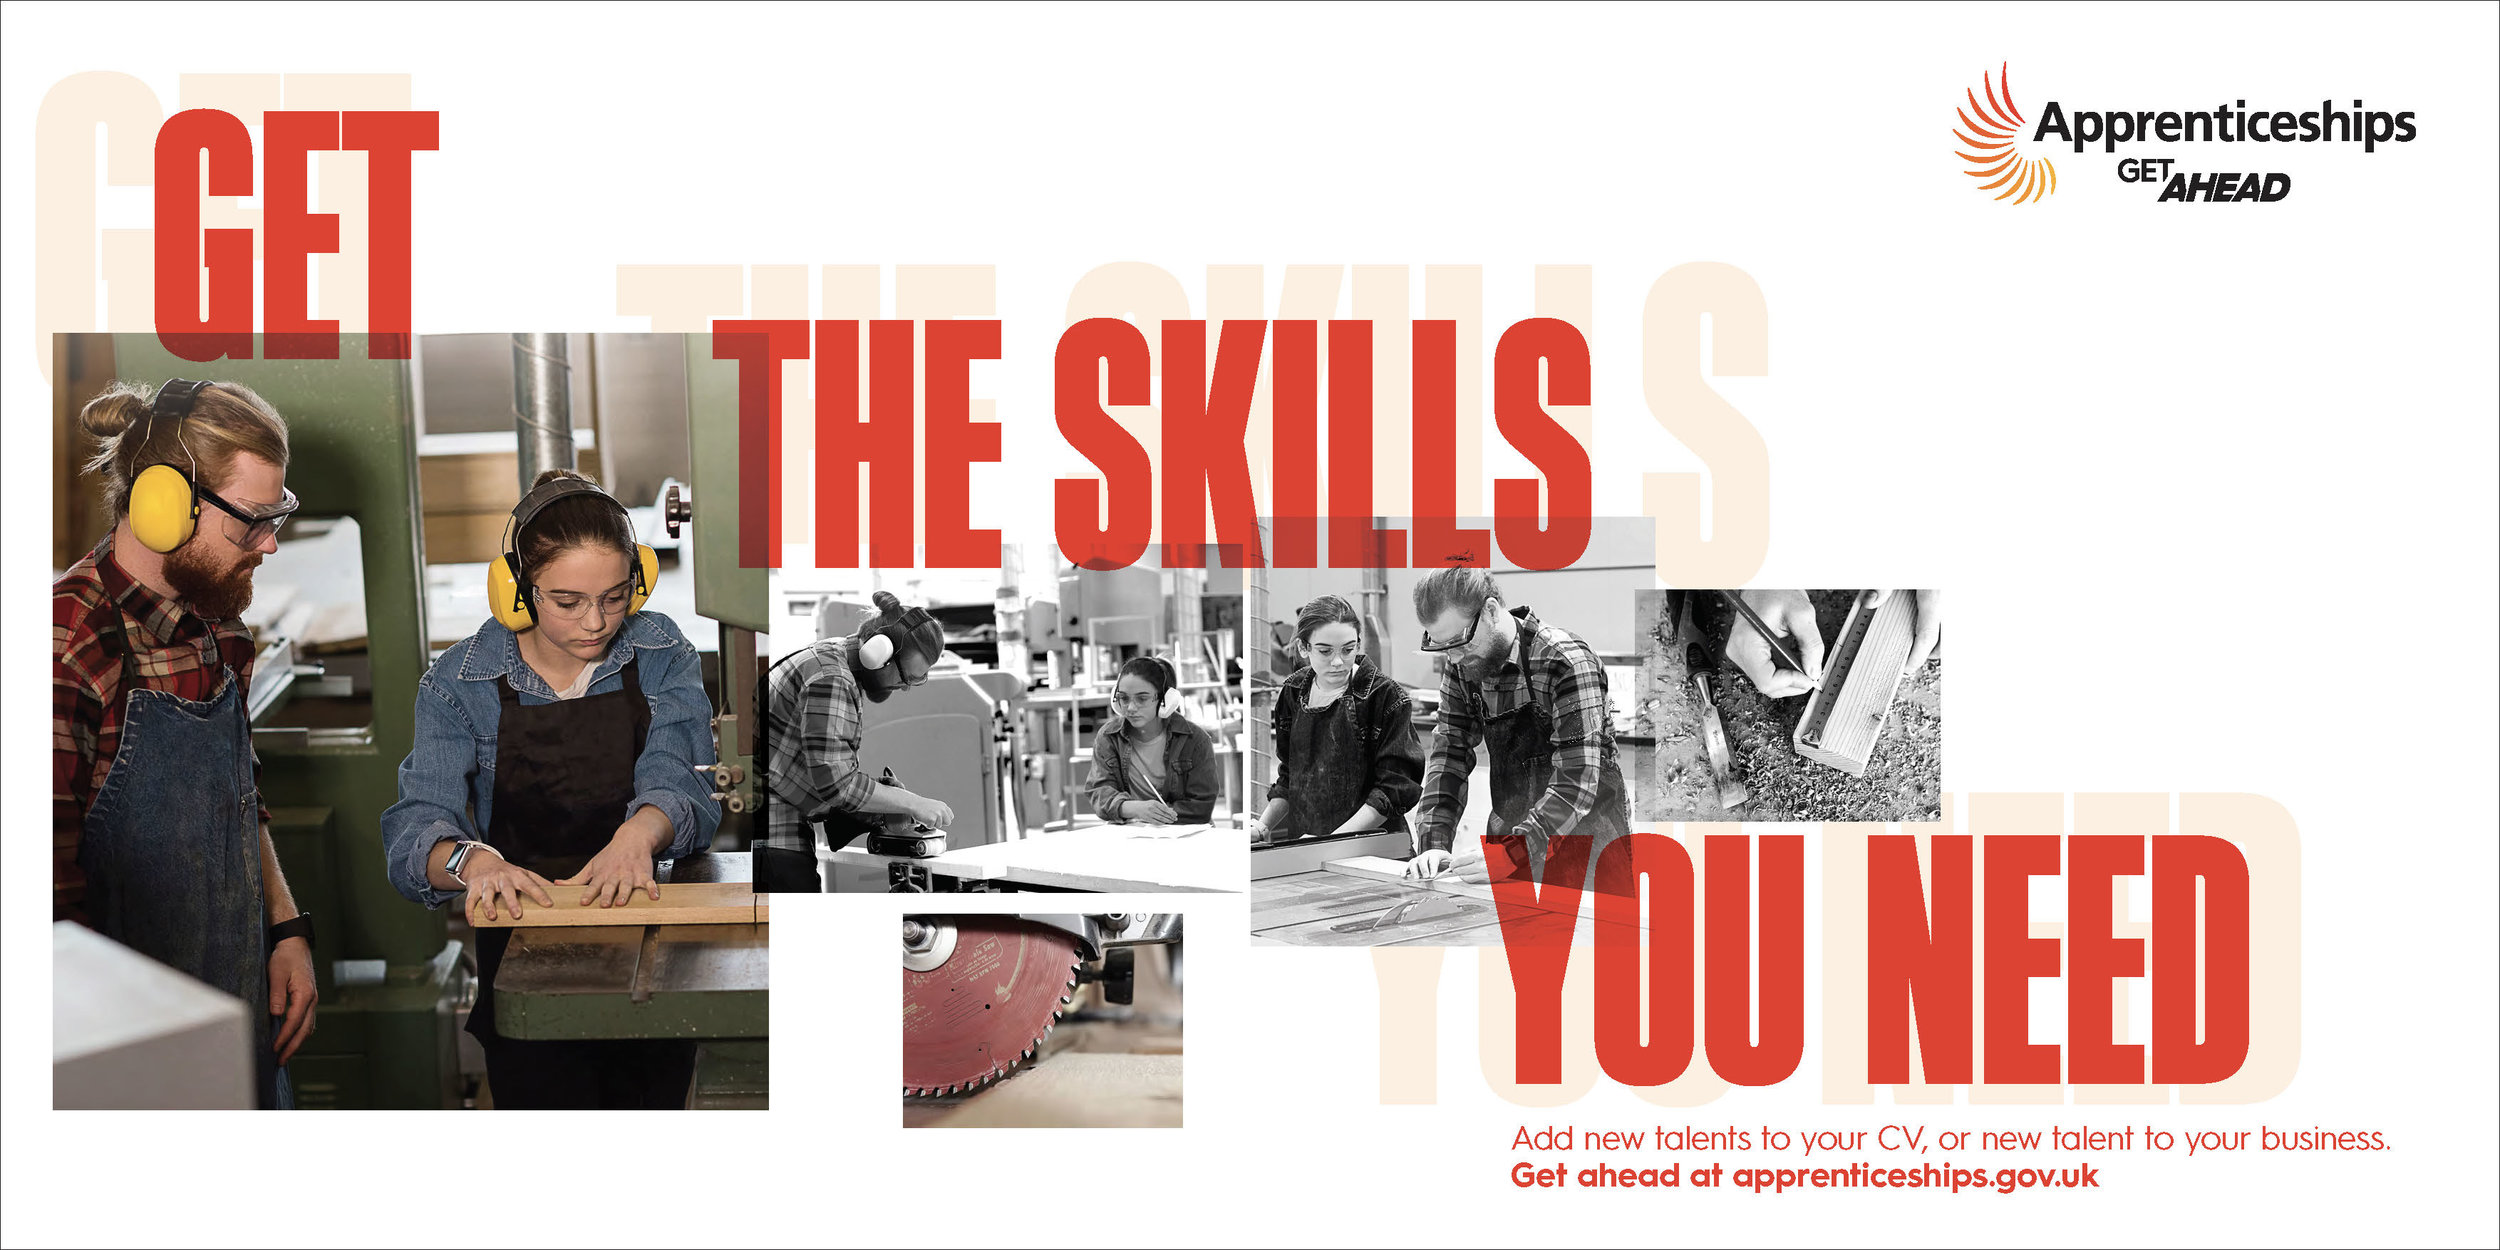 114905-Apprenticeships-48-Sheets-v4_Comments_Page_2_3508.jpg